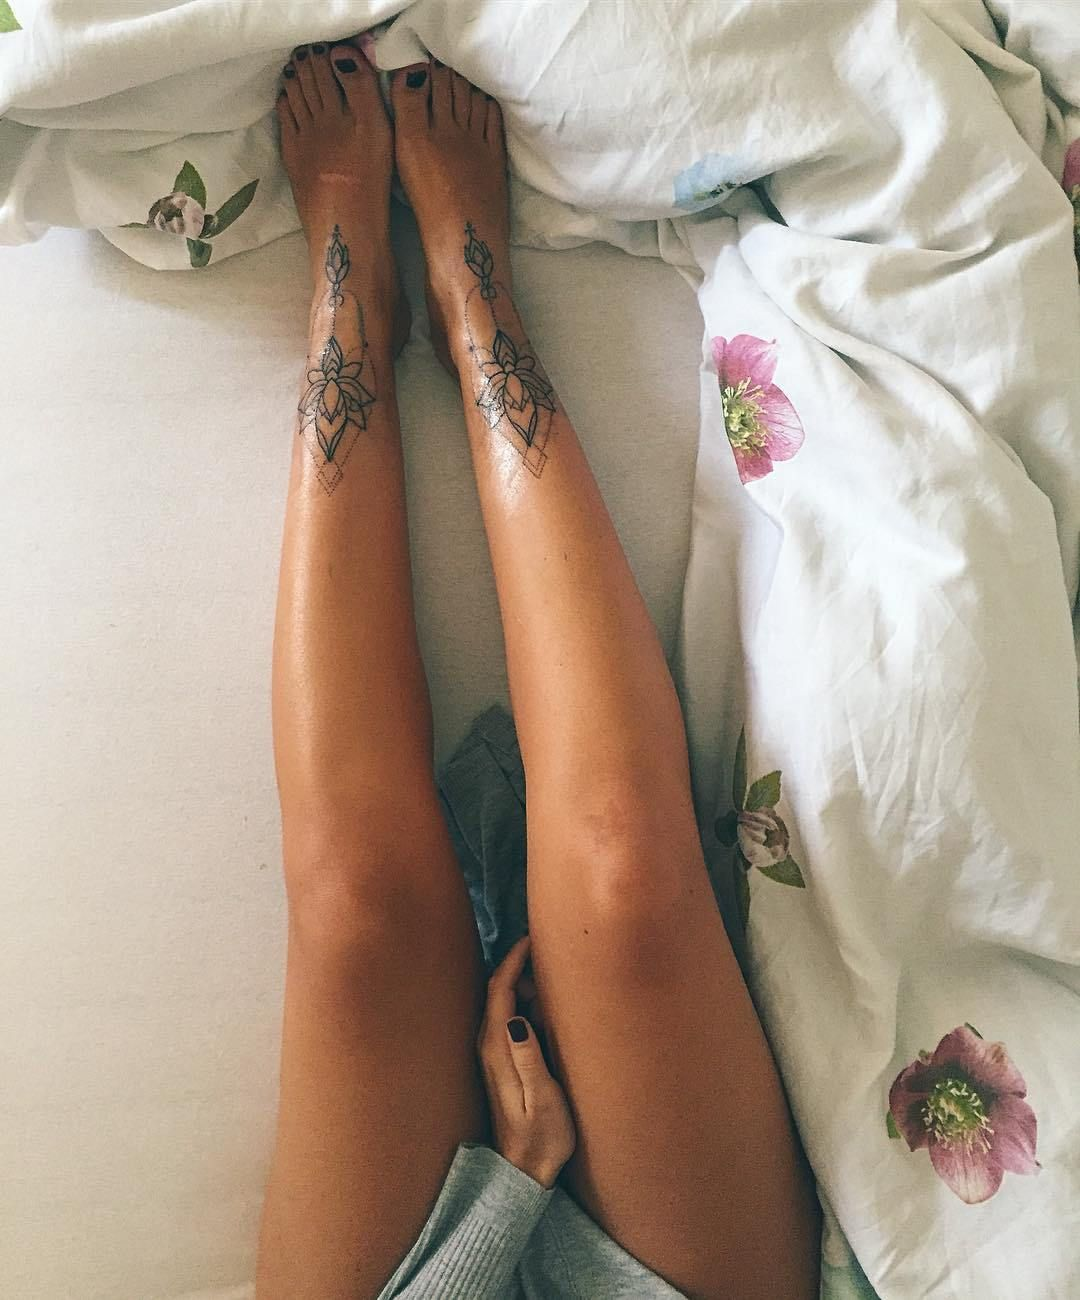 Gorgeous Ankle Bracelet Tattoo Ideas For Women Of All Ages: 30 Ankle Tattoos Every Woman Must See